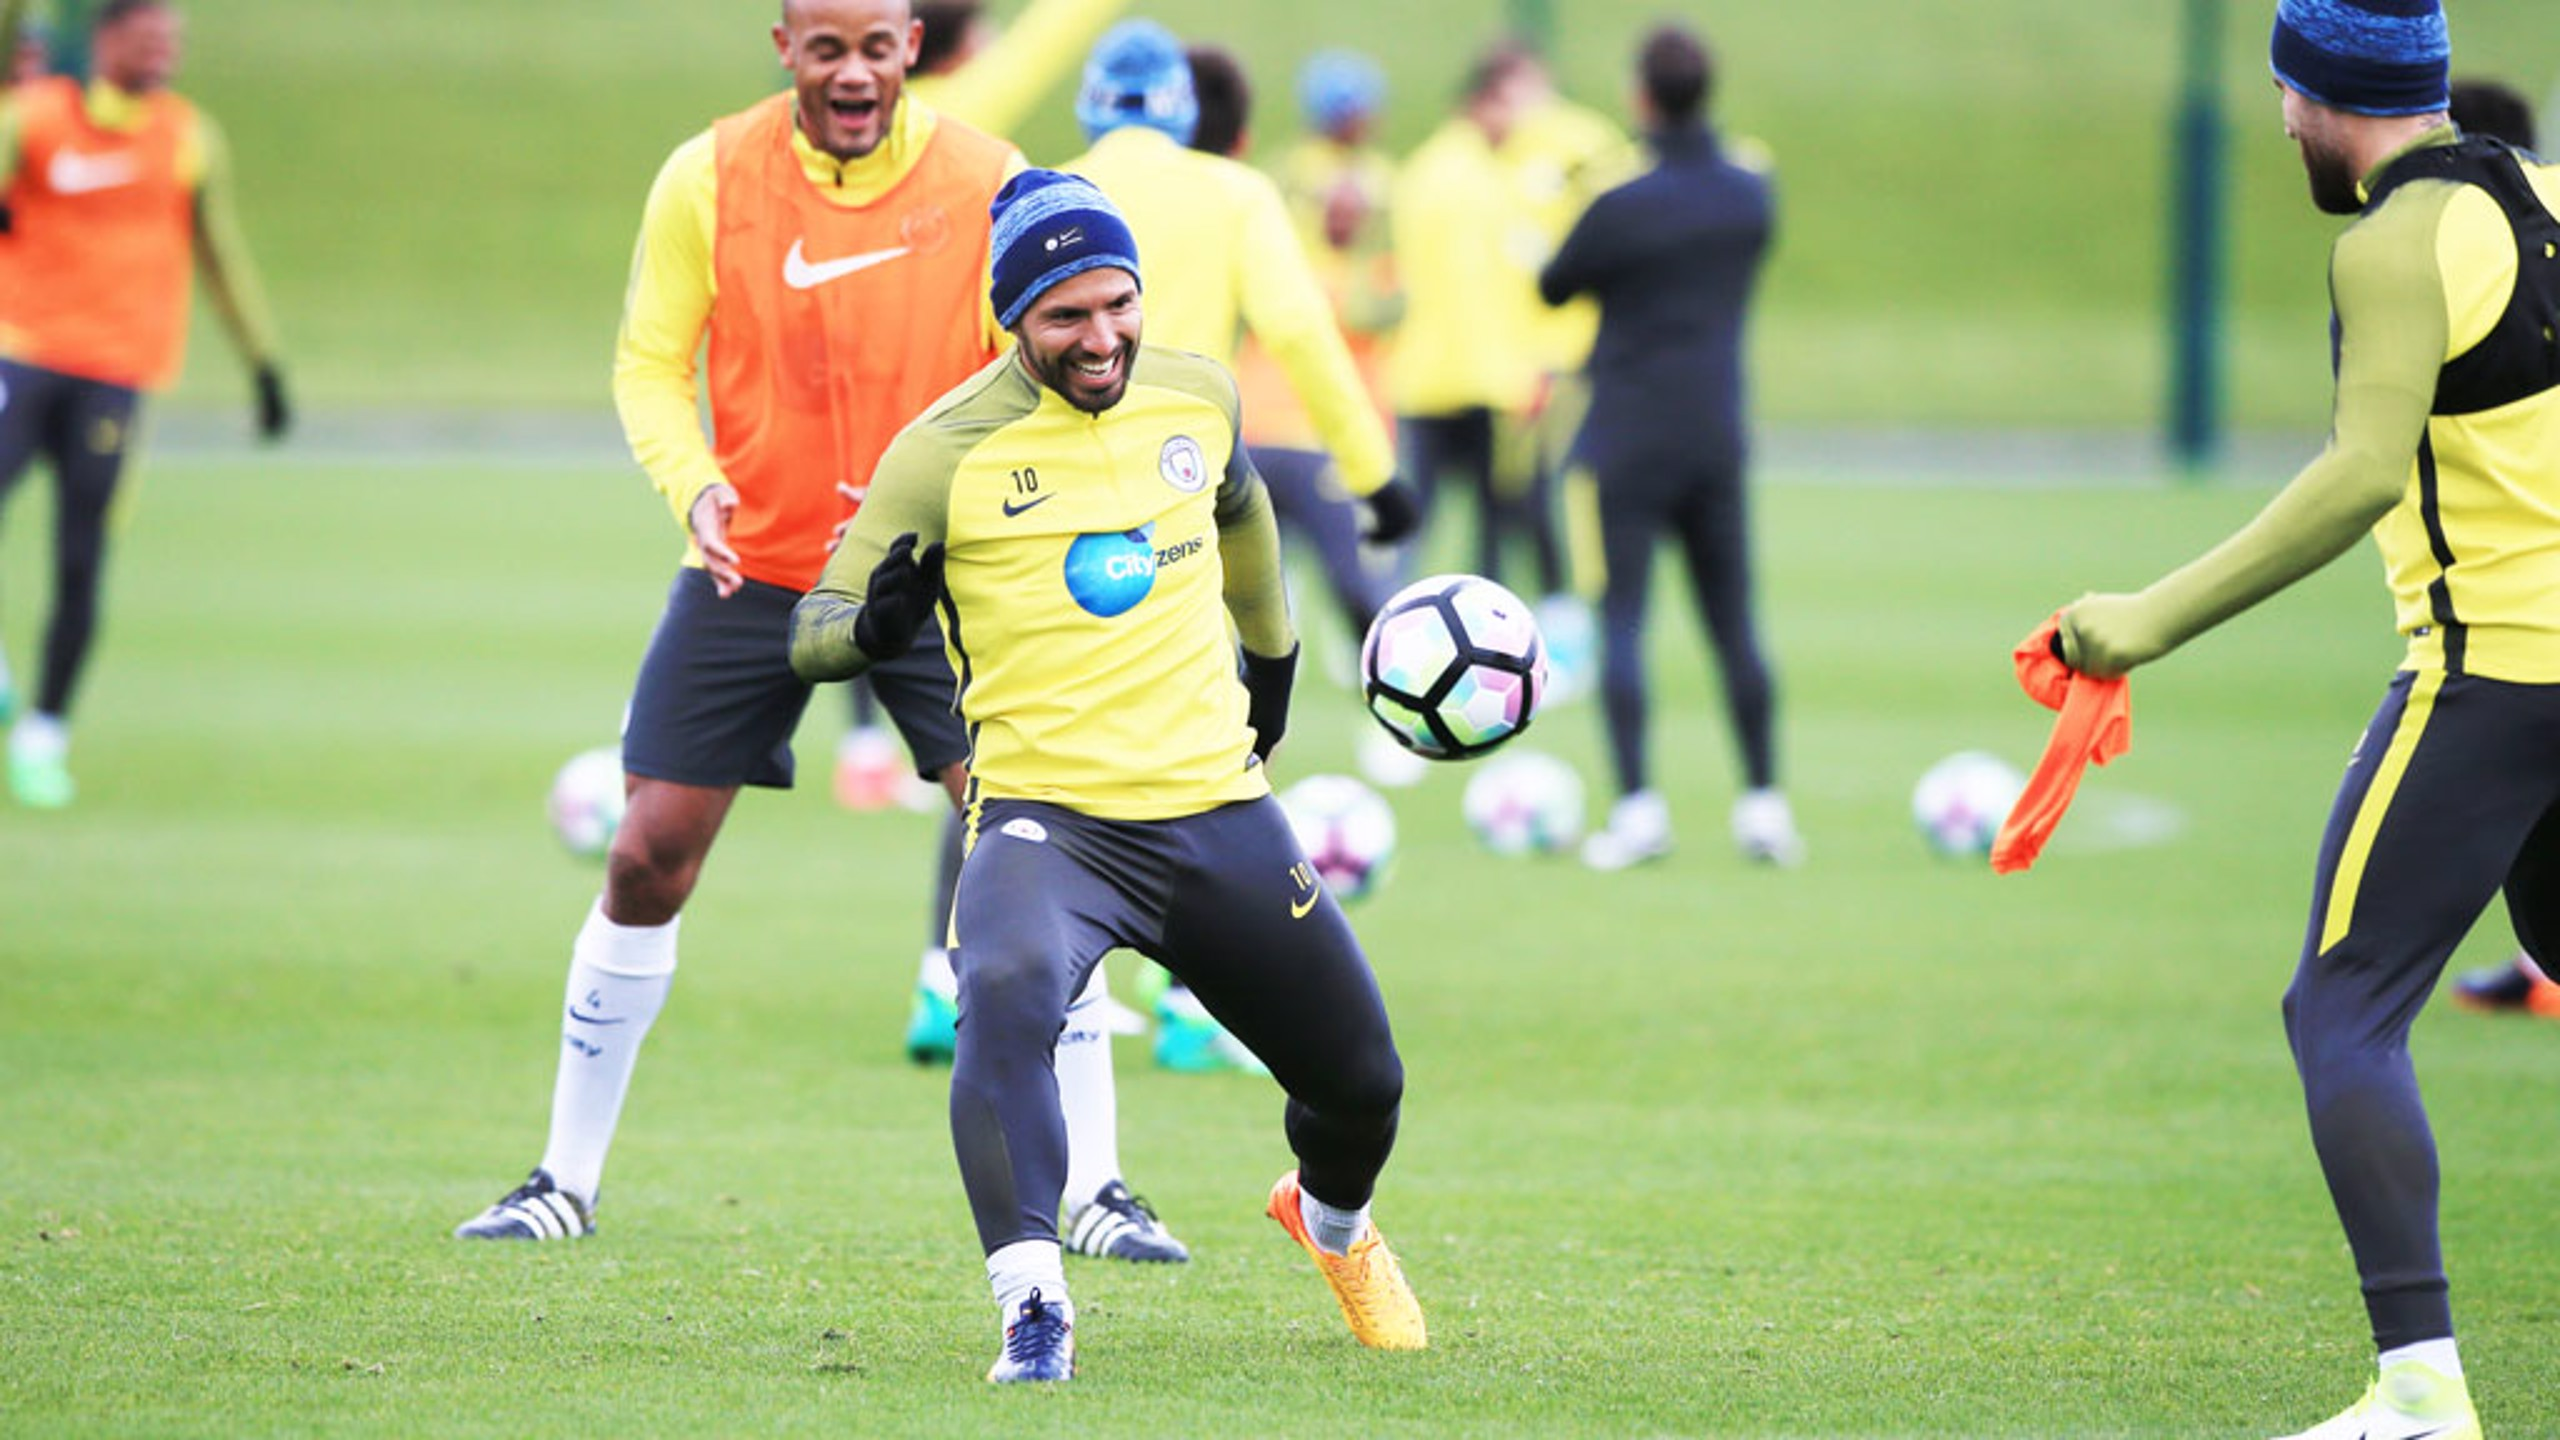 ON THE BALL: Aguero in control as always